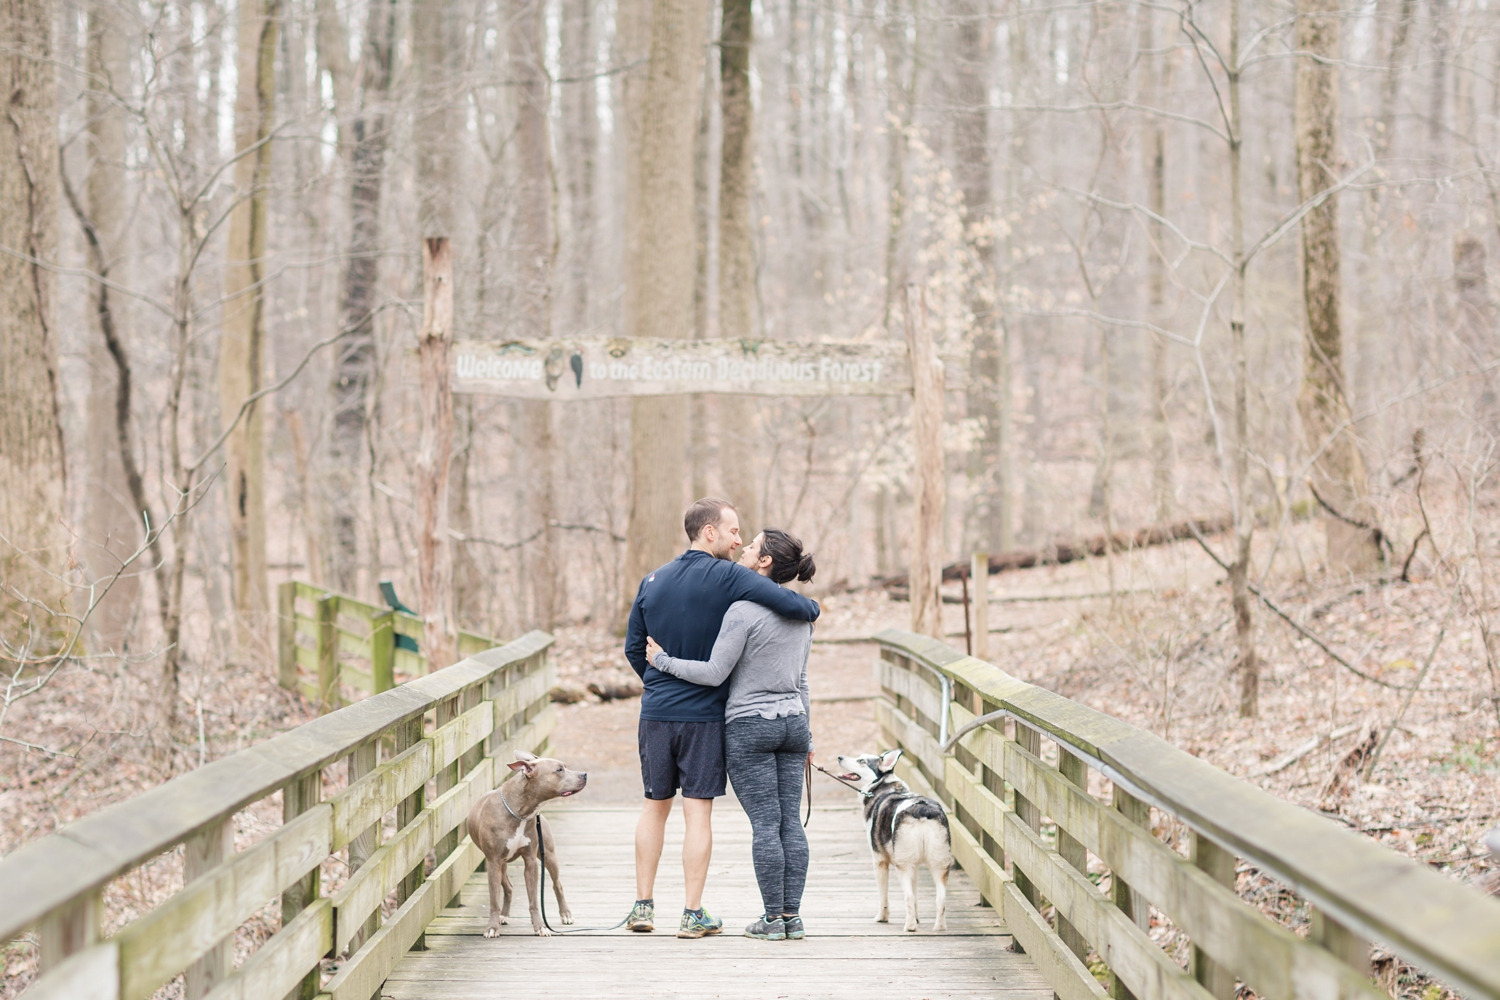 Matty & Angel Proposal Engagement-229_baltimore-maryland-proposal-and-engagement-photographer-oregon-ridge-engagement-anna-grace-photography-photo.jpg